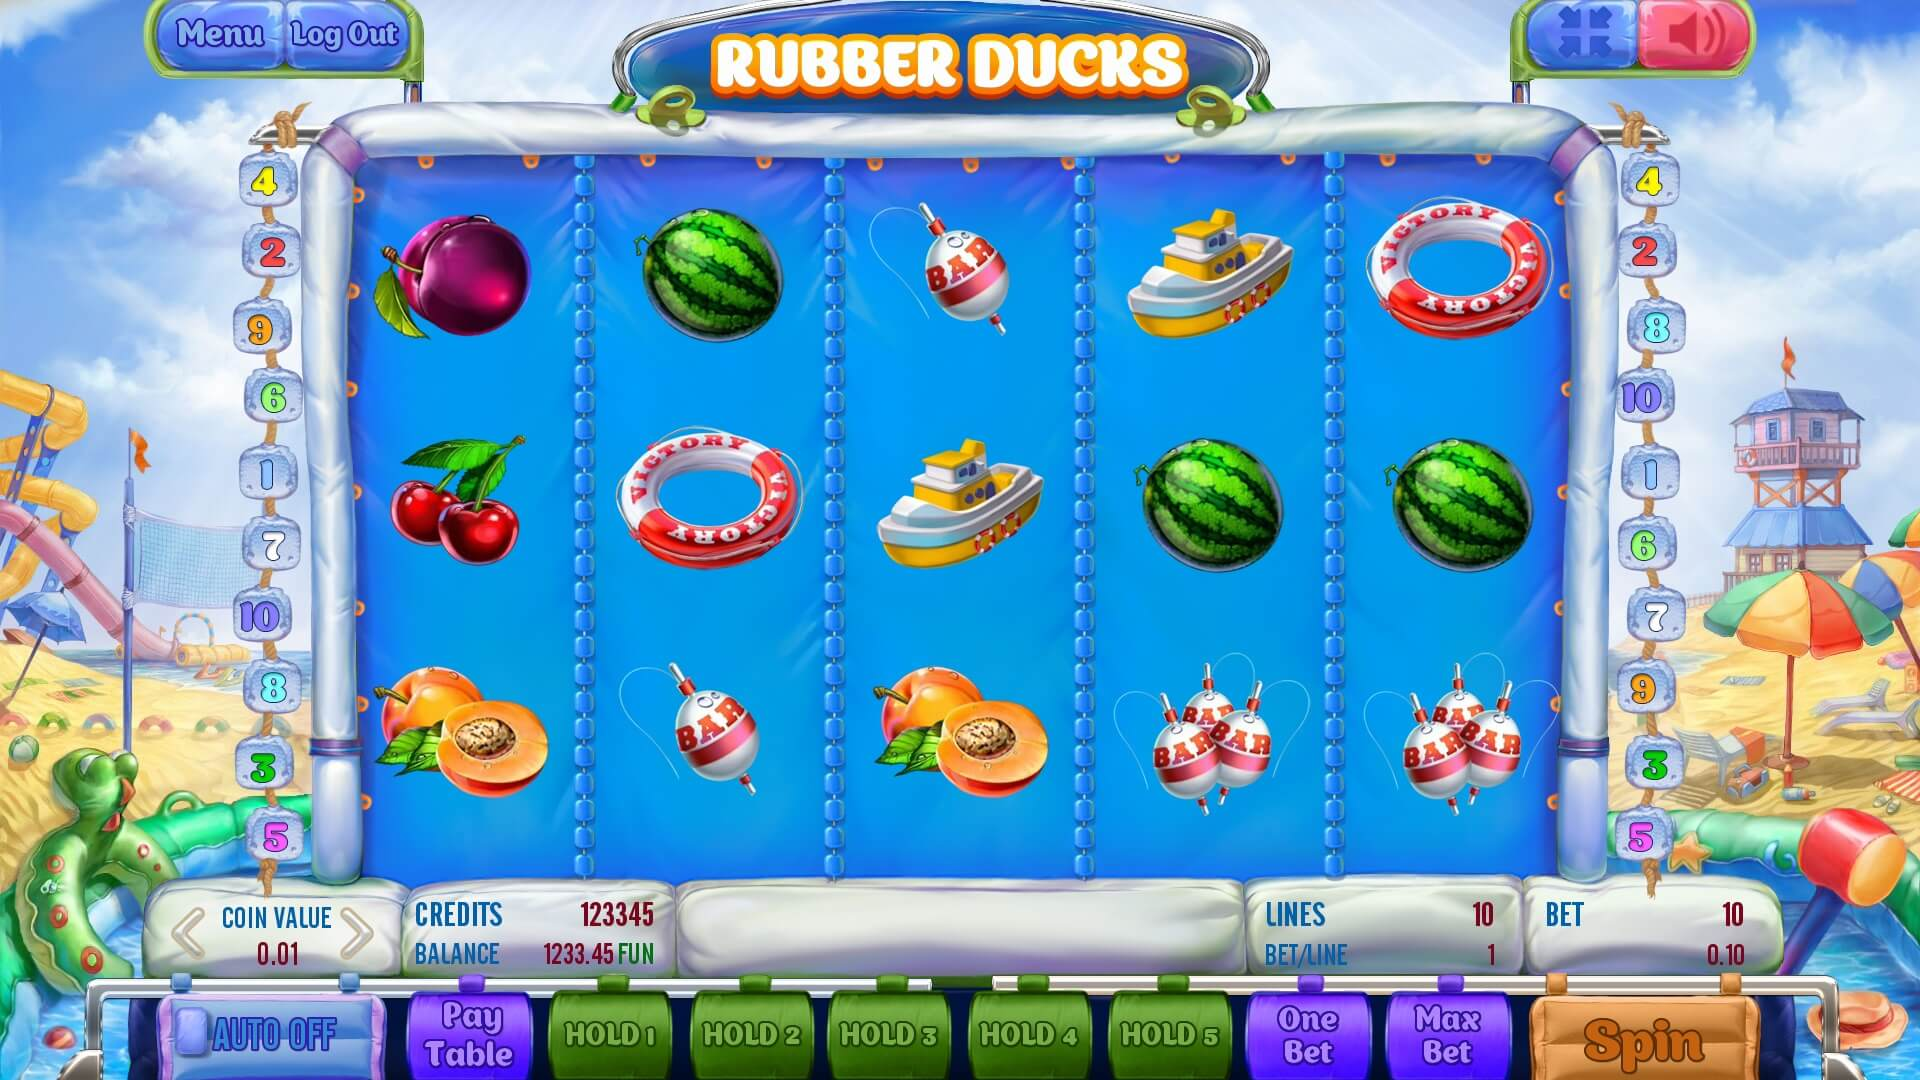 Rubber Ducks screenshot 2